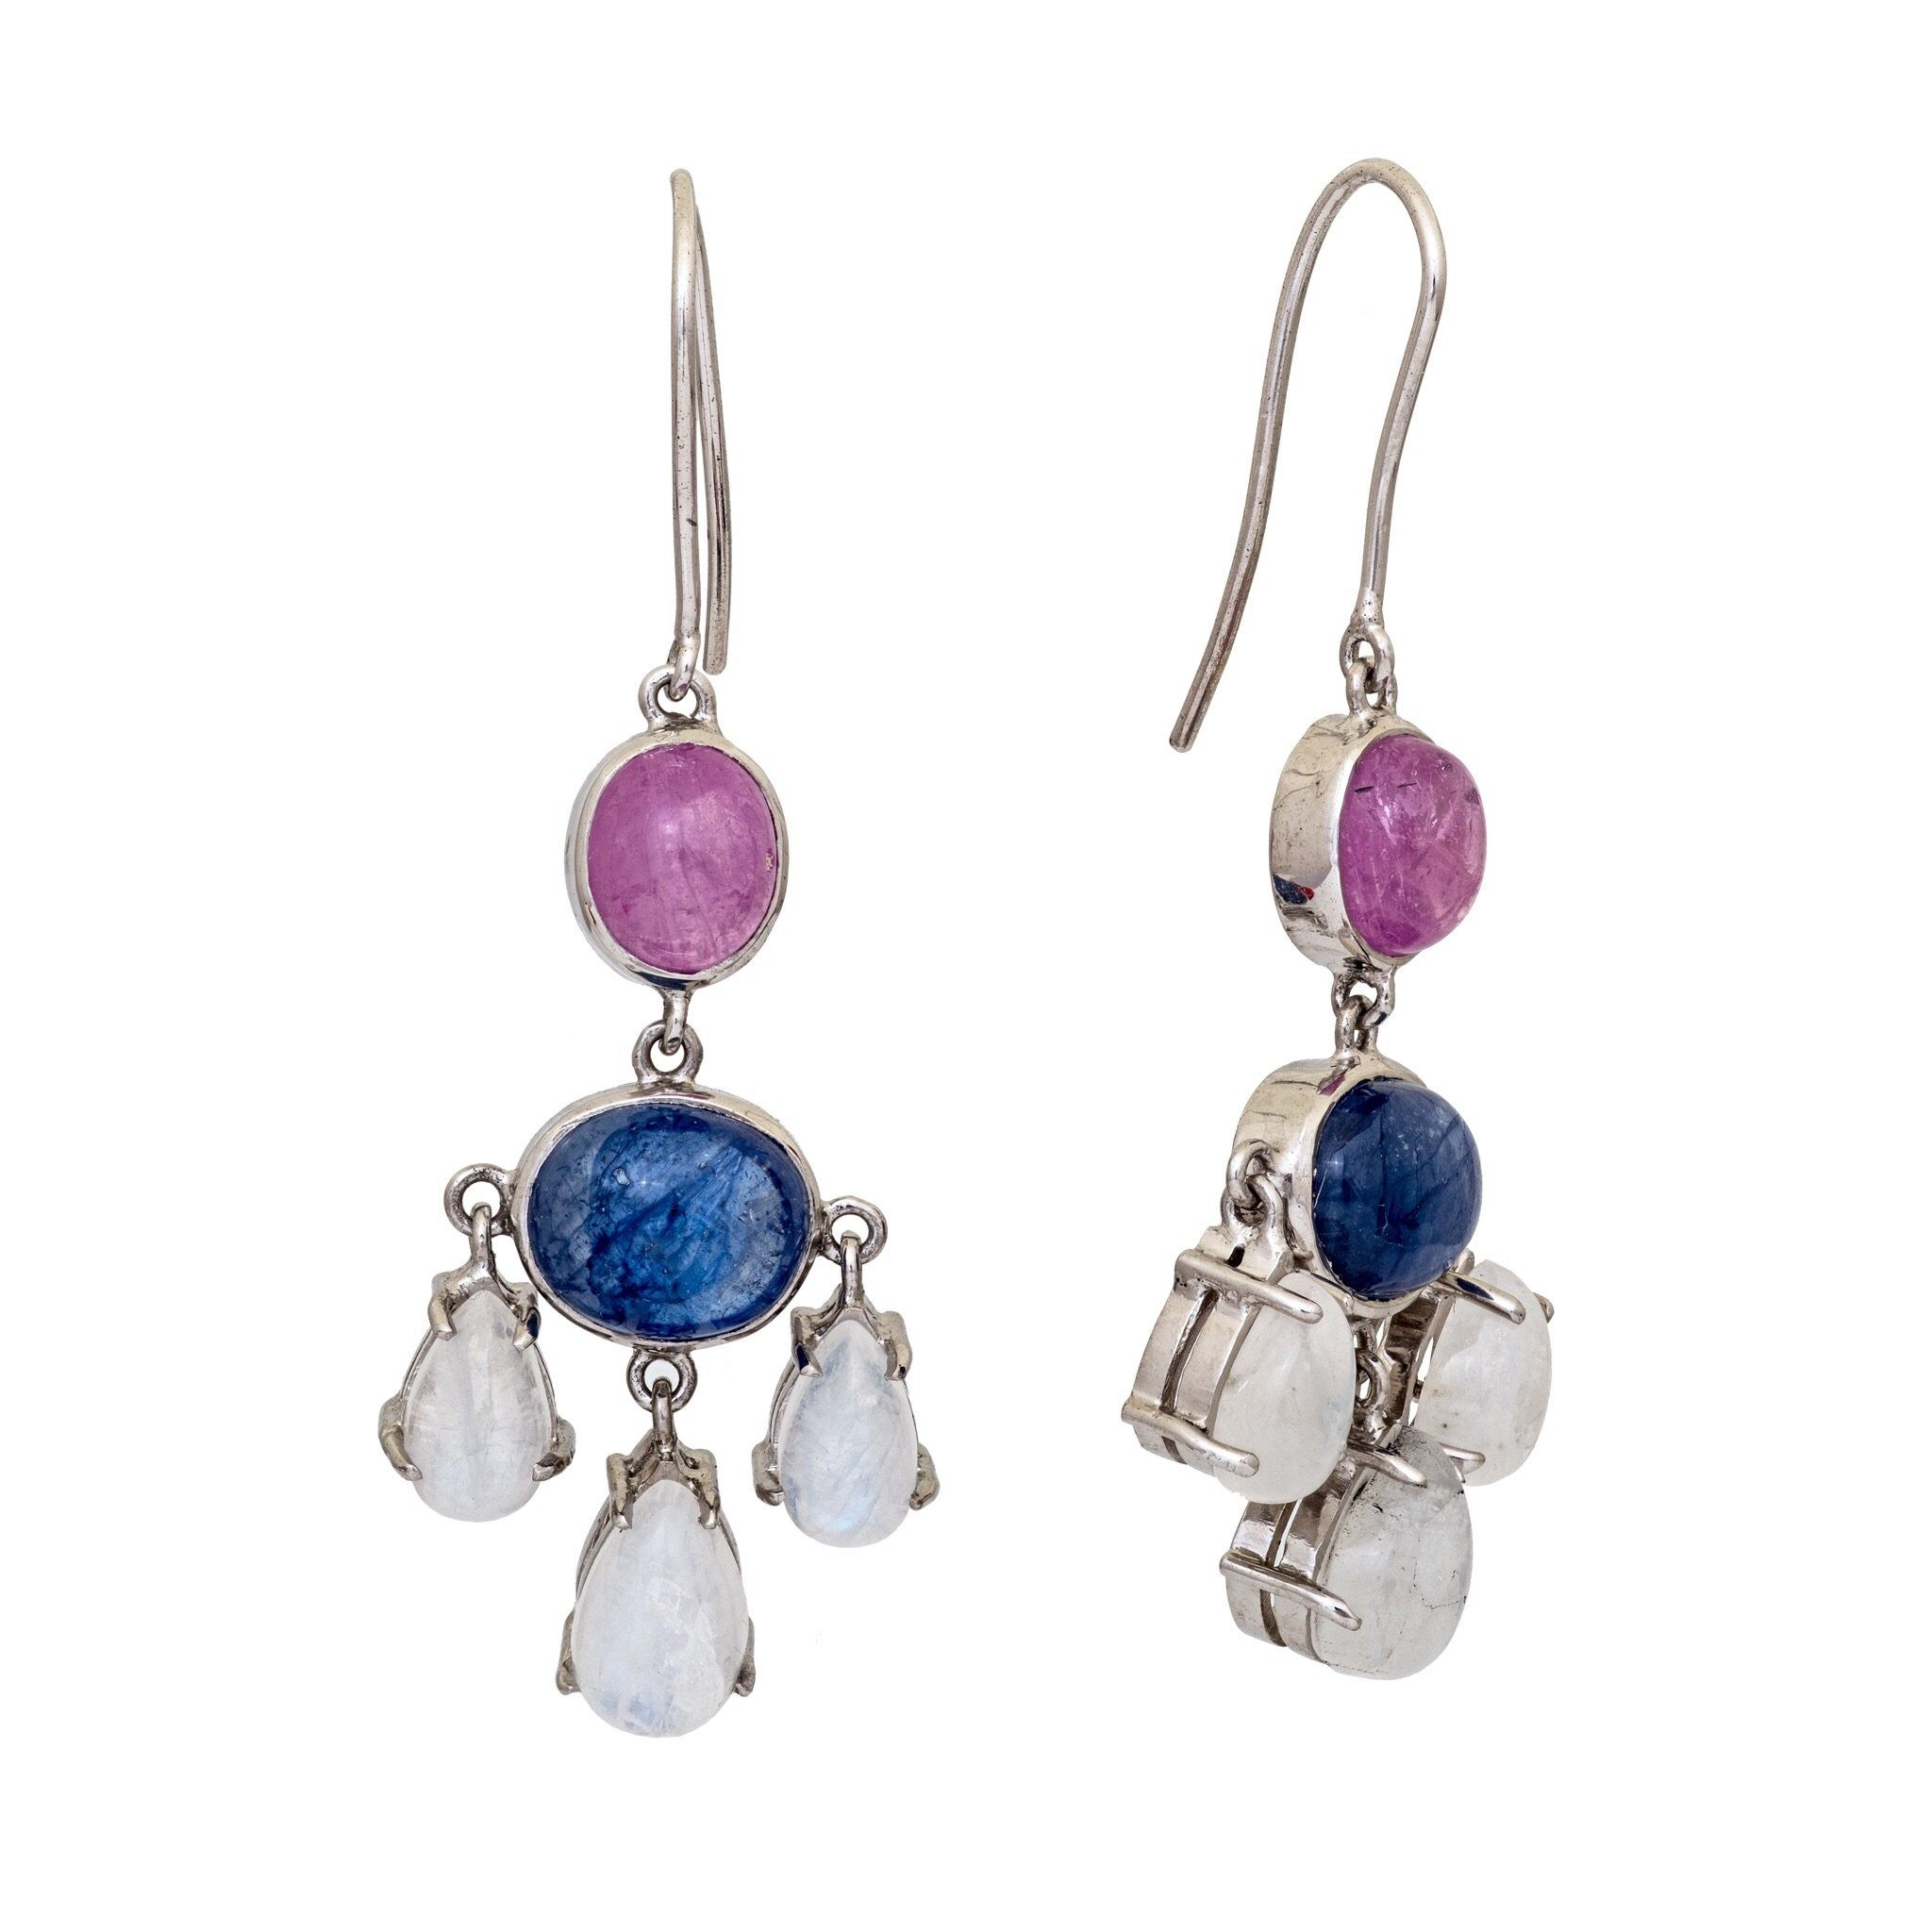 HAE ruby and moonstone chandelier earrings